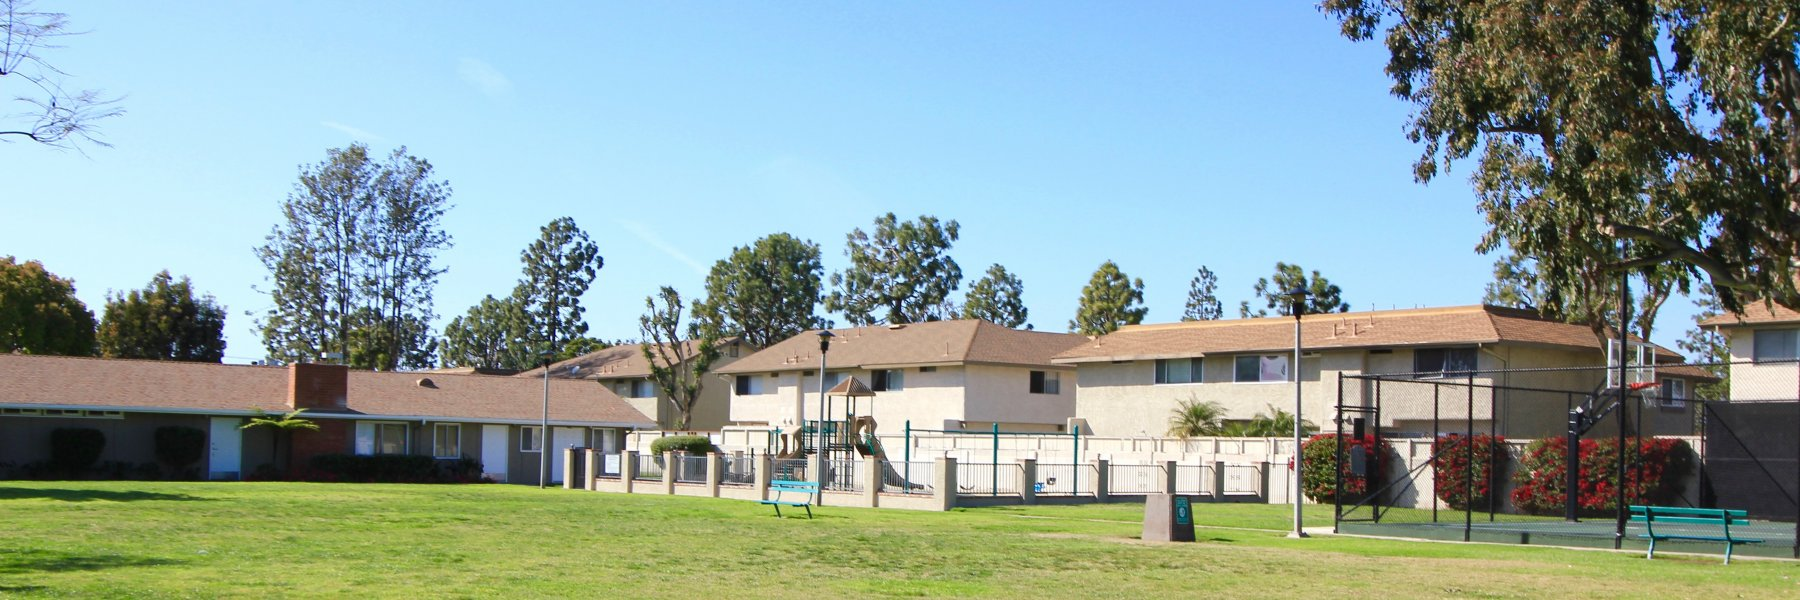 Village Townhomes is a community of attached homes in Huntington Beach California